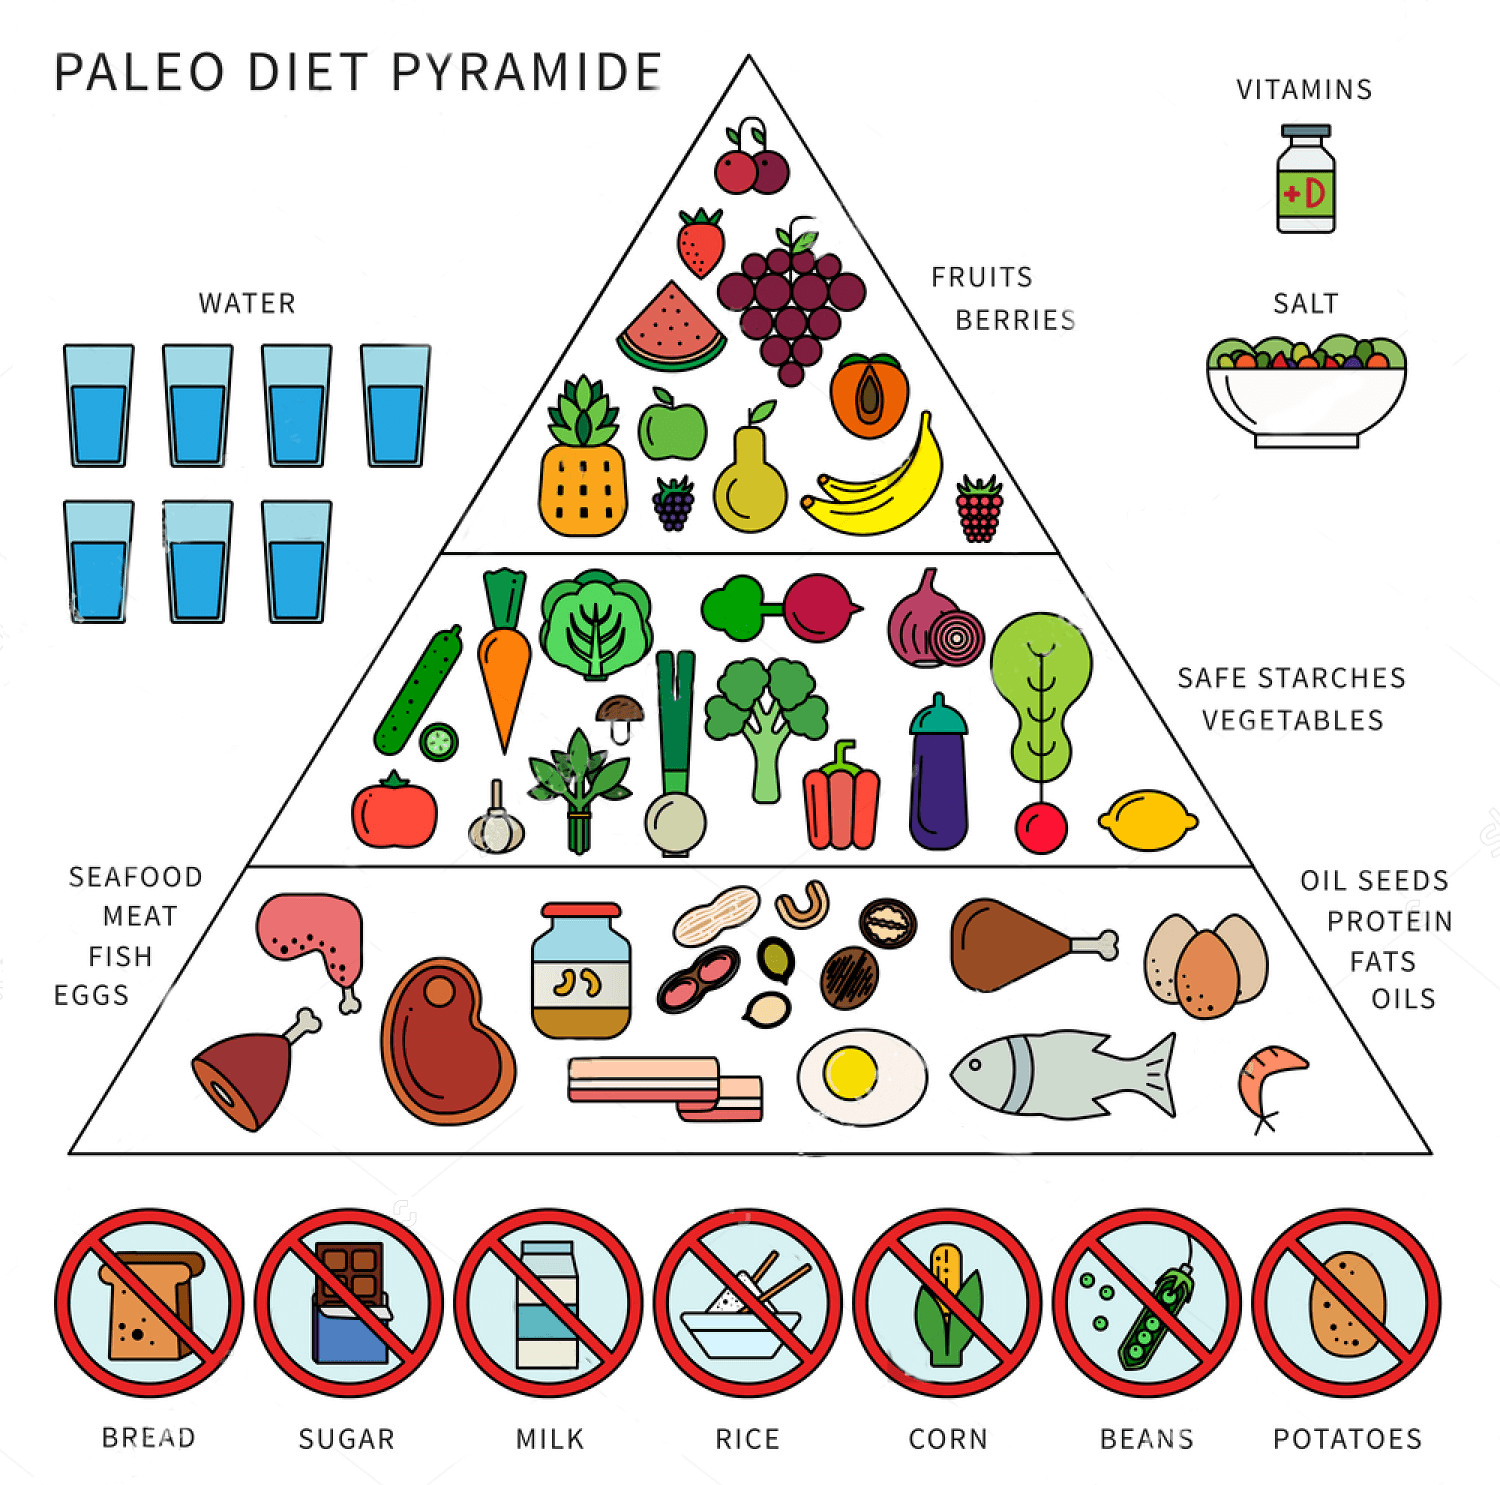 Paleo Diet Plan 7 Day Meal Plan For Healthy Weight Loss